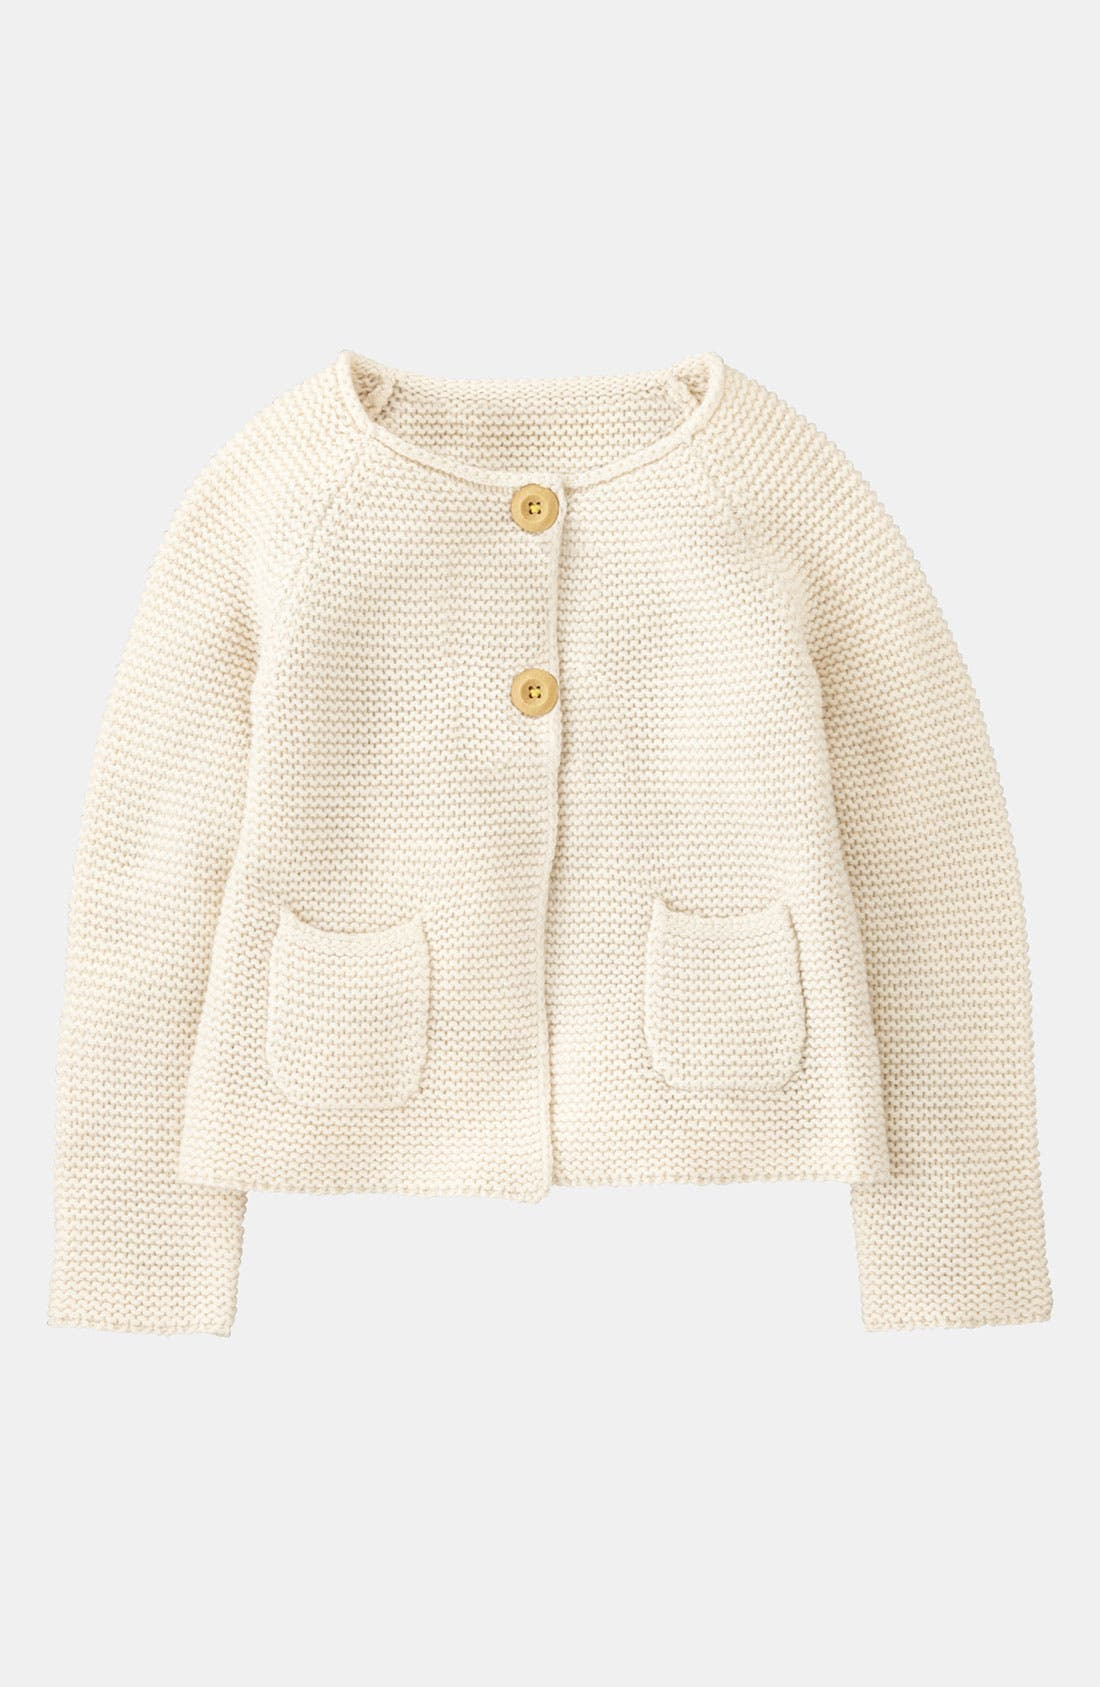 Main Image - Mini Boden Textured Cardigan (Toddler)